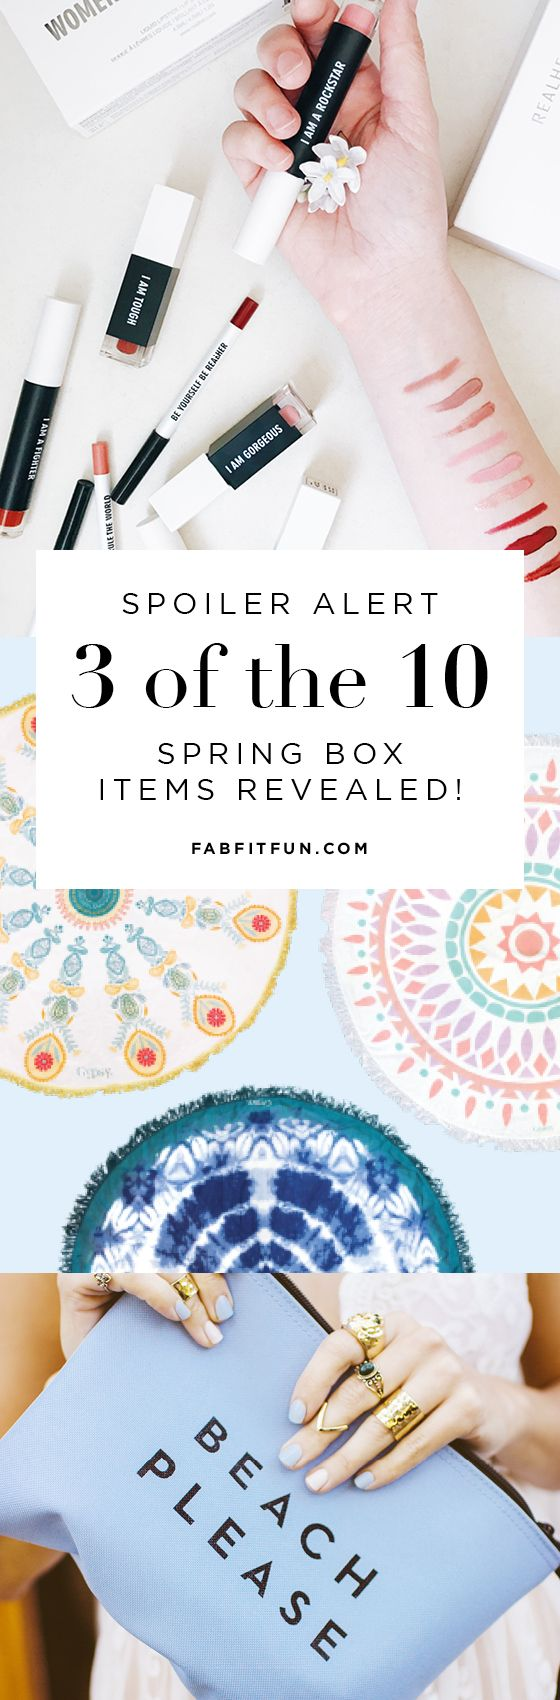 ALERT: The Spring Box just sold out! Sign up today to reserve the new FabFitFun box. These boxes sell out quick + you won't want to miss out! Use code HAPPY to get $10 off + FREE Shipping.